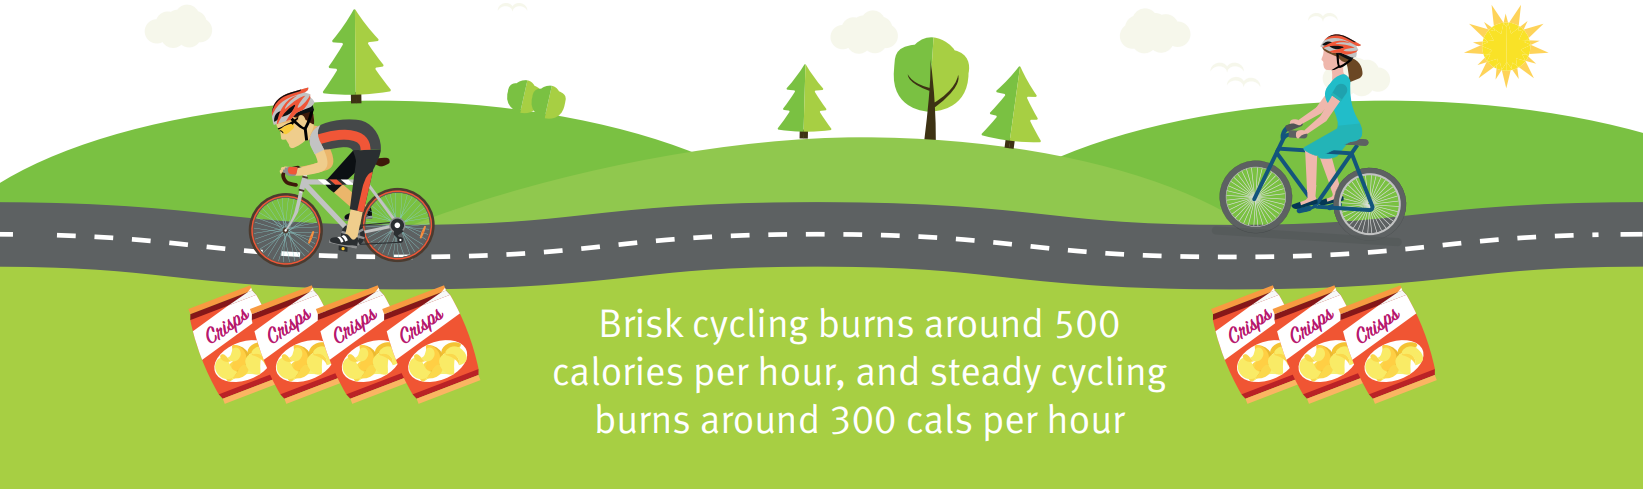 Brisk cycling burns around 500 calories per hours, and steady cycling burns around 300 cals per hour